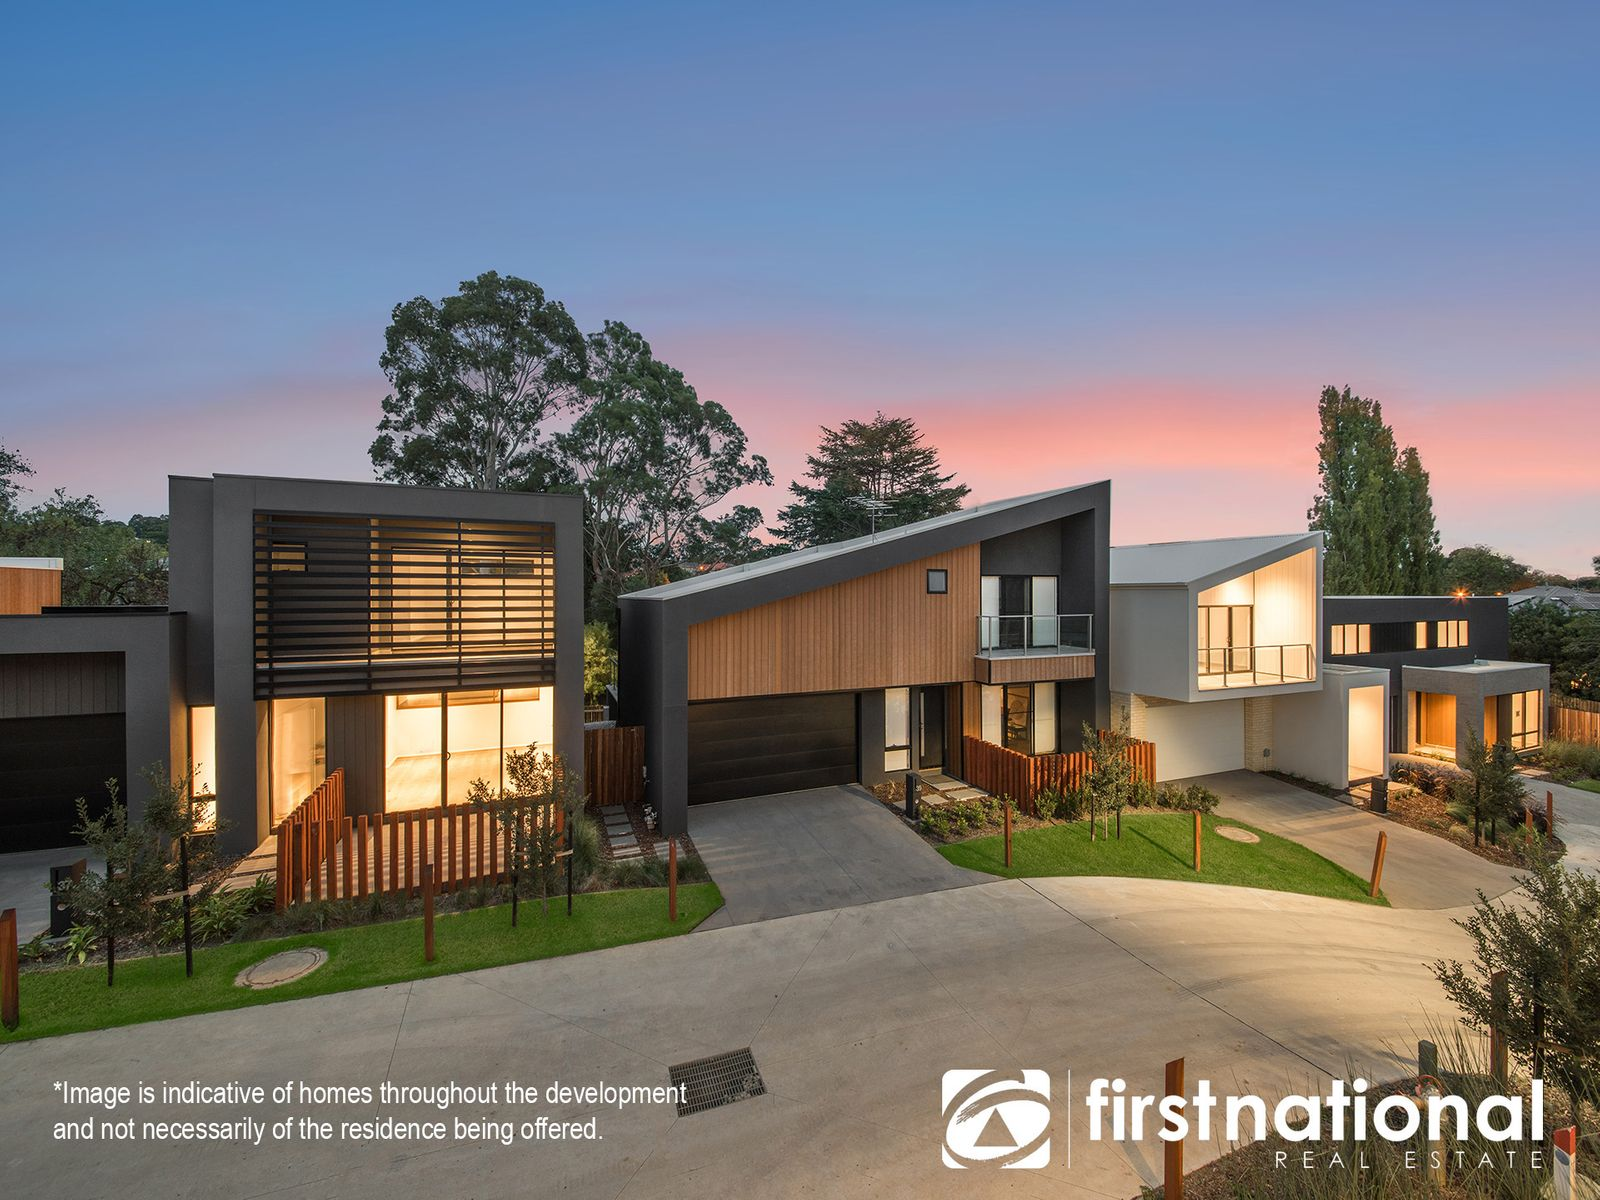 Lot 15/16-18 Harkaway Road, Berwick, VIC 3806